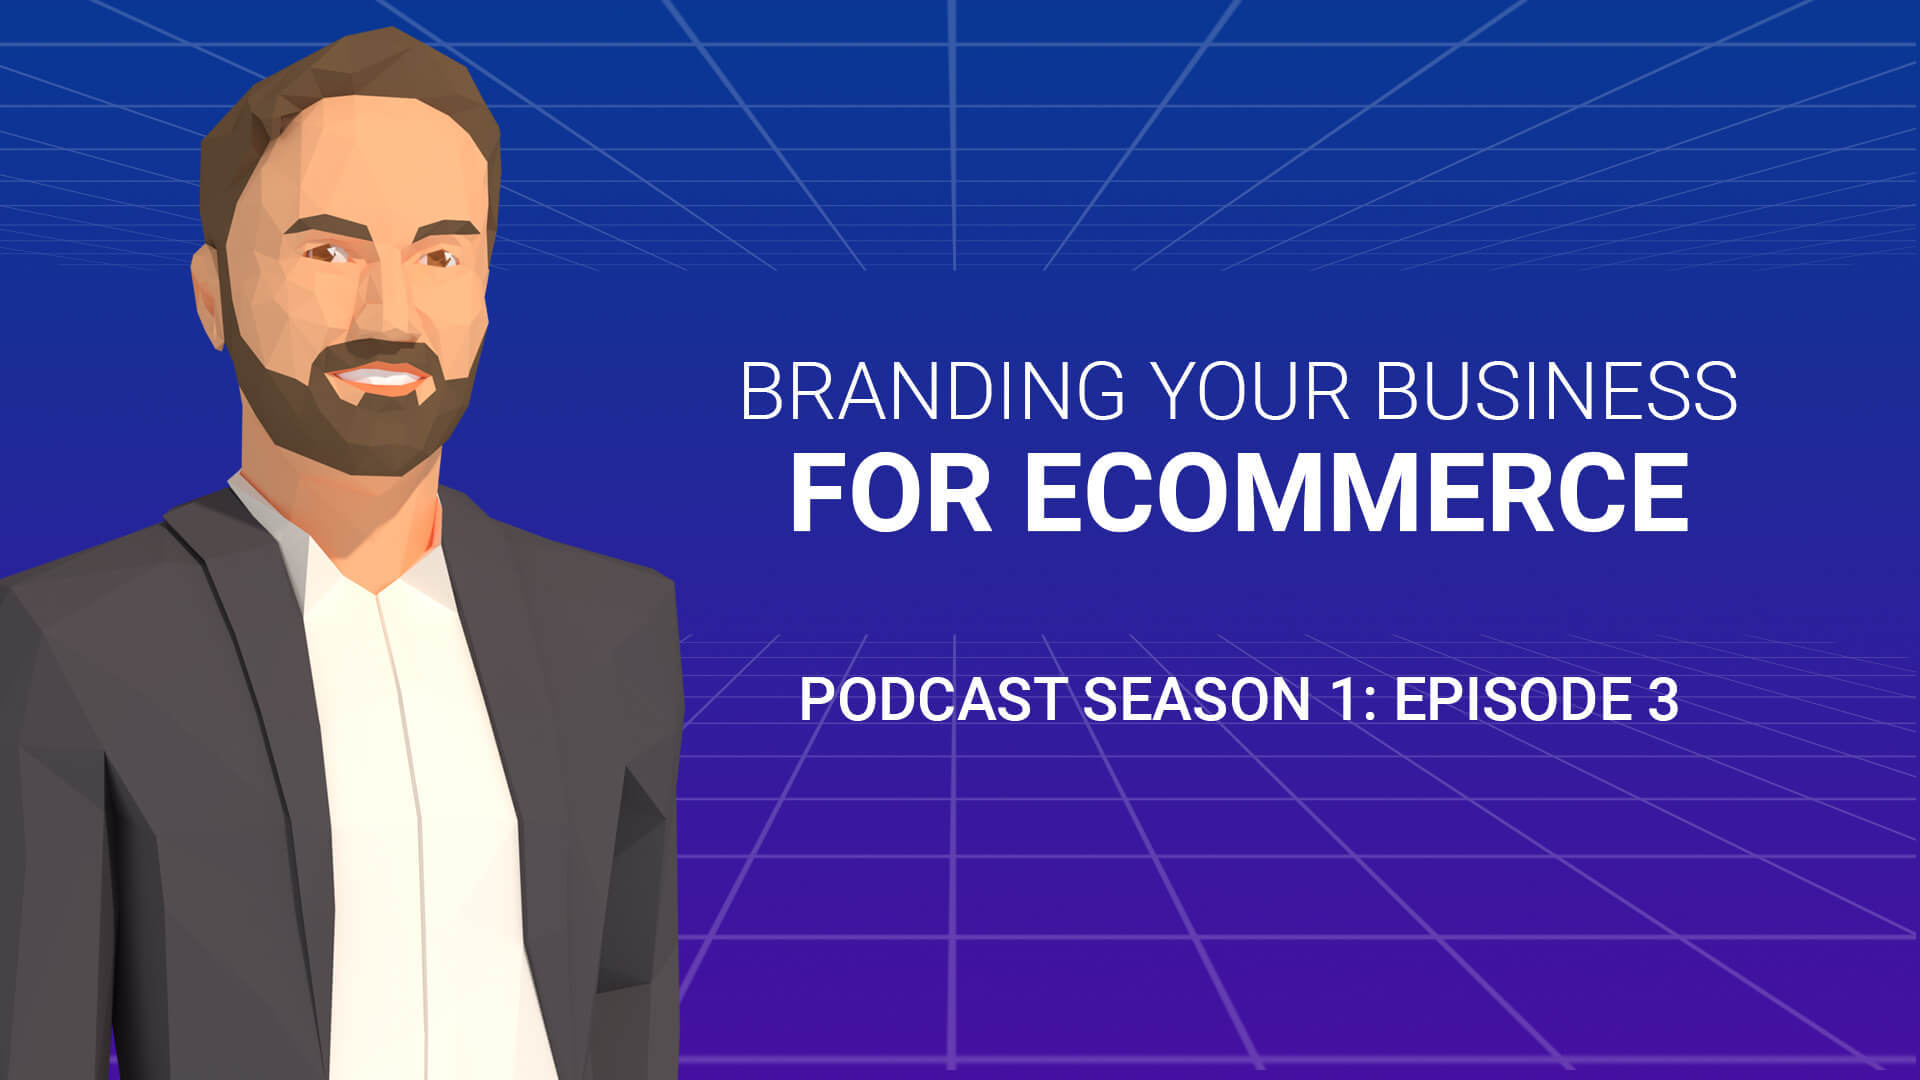 Branding Your Business for Ecommerce